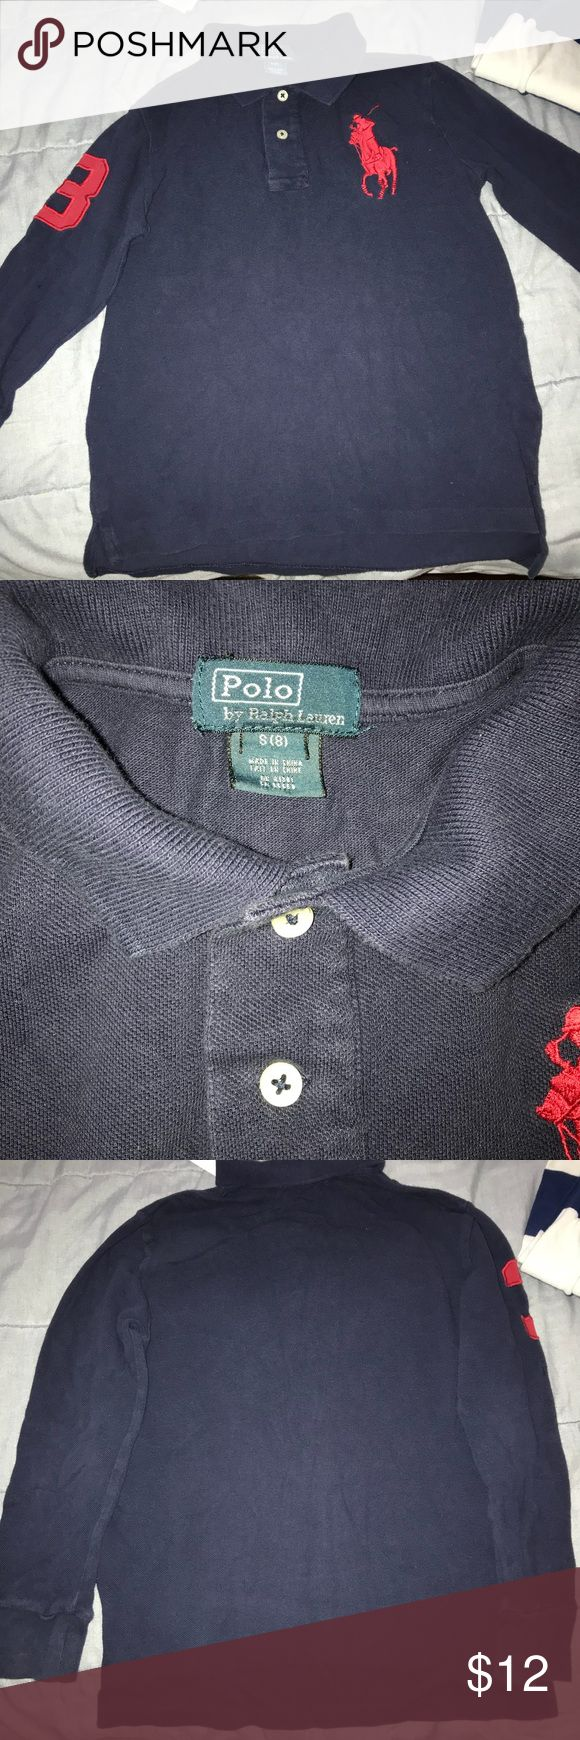 Polo shirt Blue polo collar shirt Polo by Ralph Lauren Shirts & Tops Tees - Long Sleeve